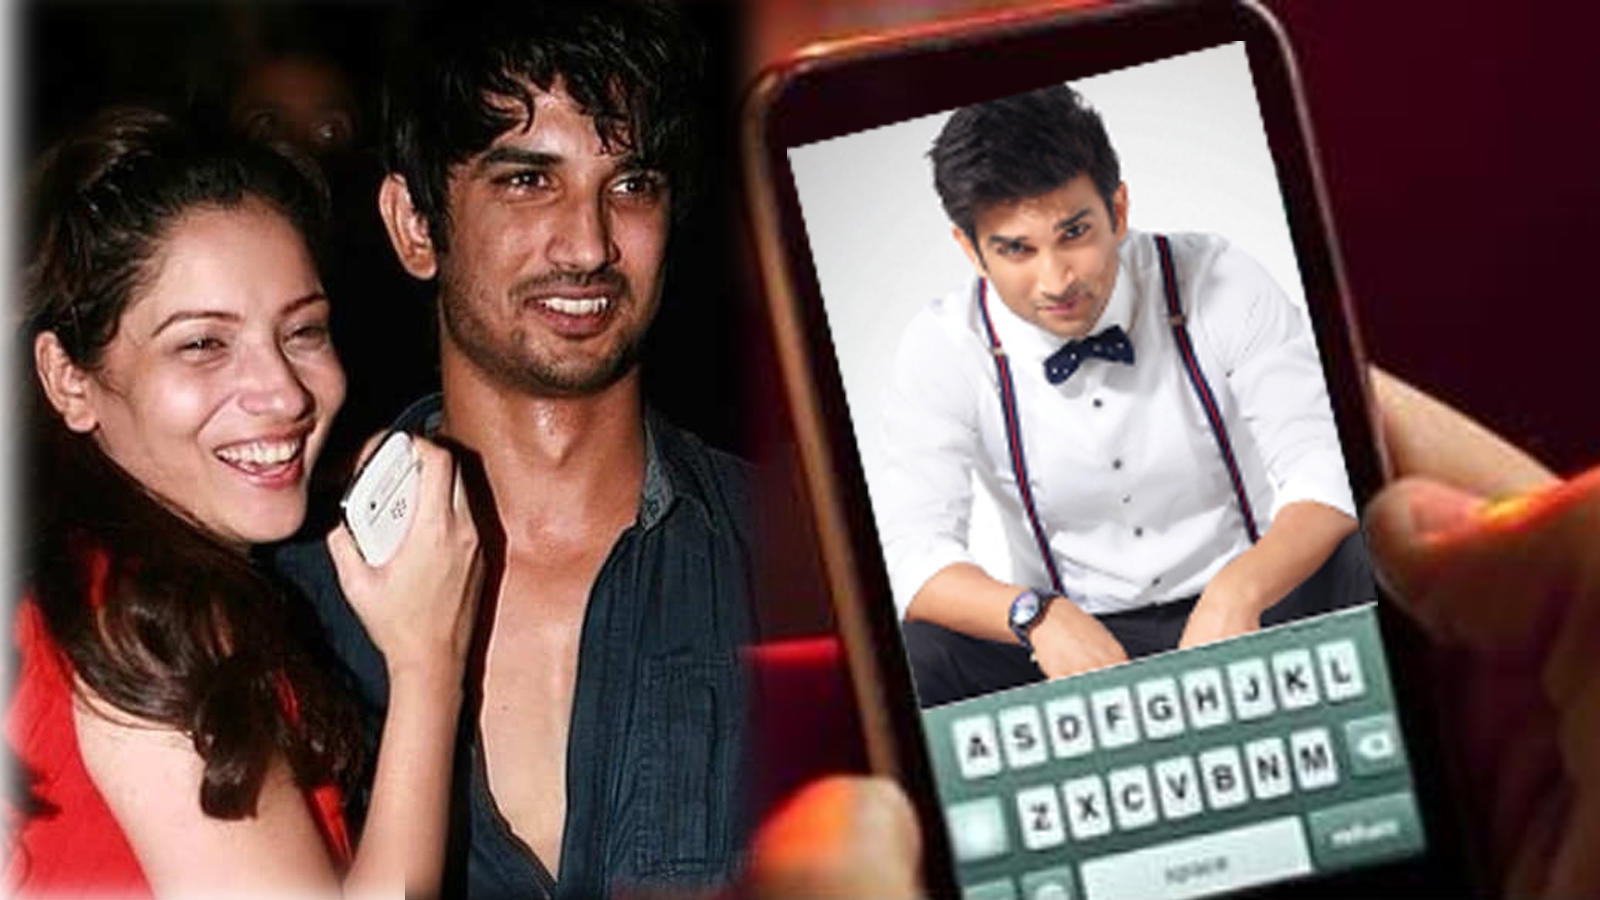 ankita-lokhandes-fan-page-mentions-phone-number-of-mp-labourer-man-bombarded-with-calls-from-sushant-singh-rajputs-fans